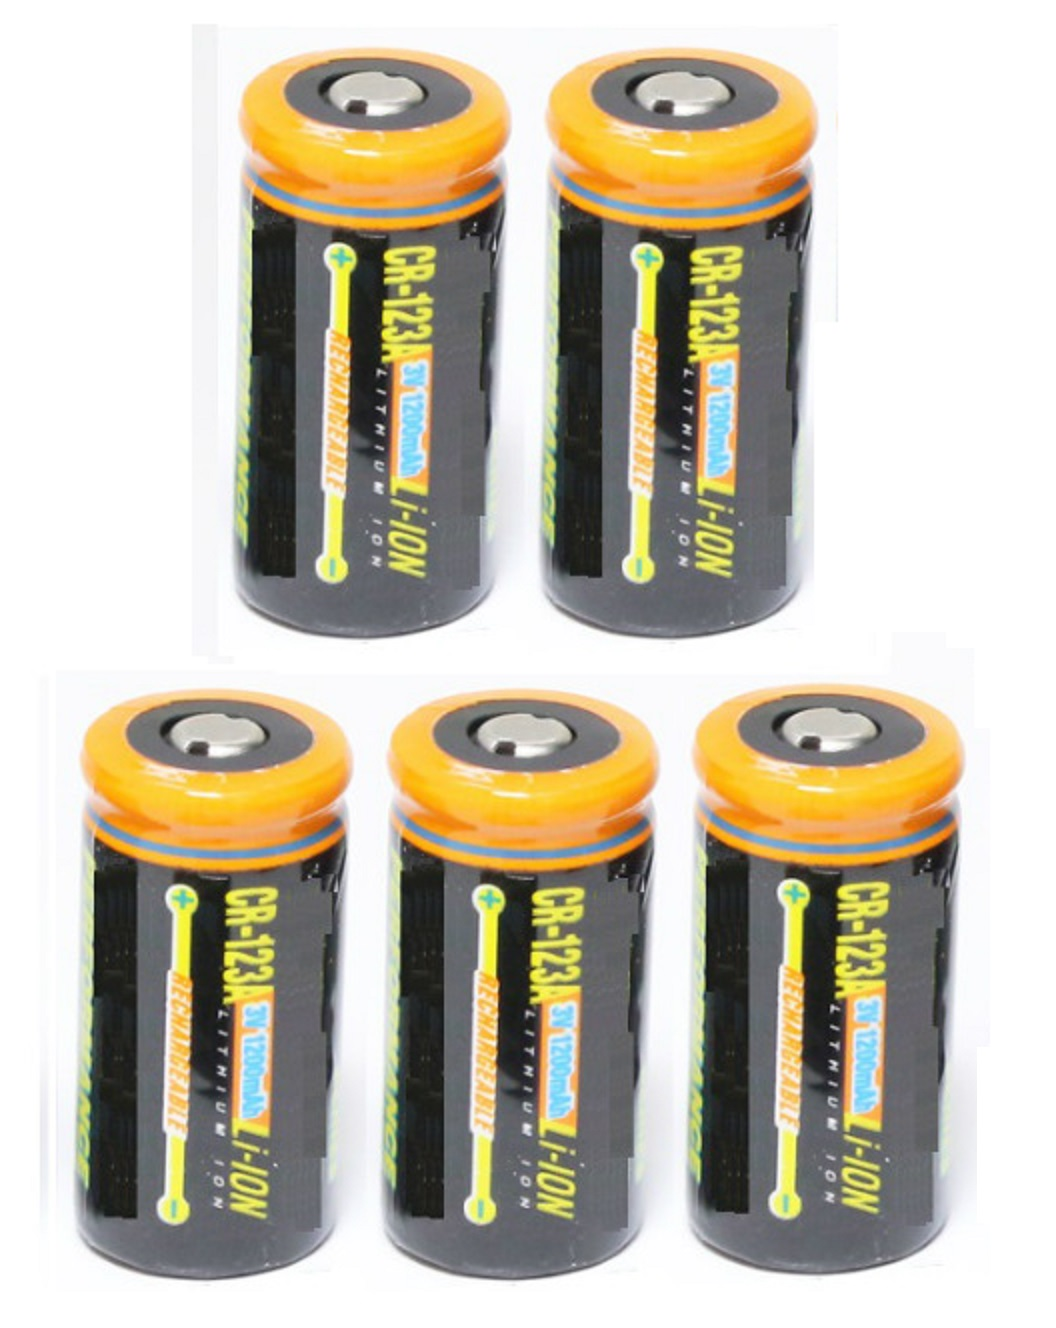 Ultimate Arms Gear 5 Pack CR123A 1200 mAh Lithium Rechargeable Batteries Battery For EOTECH Optics by